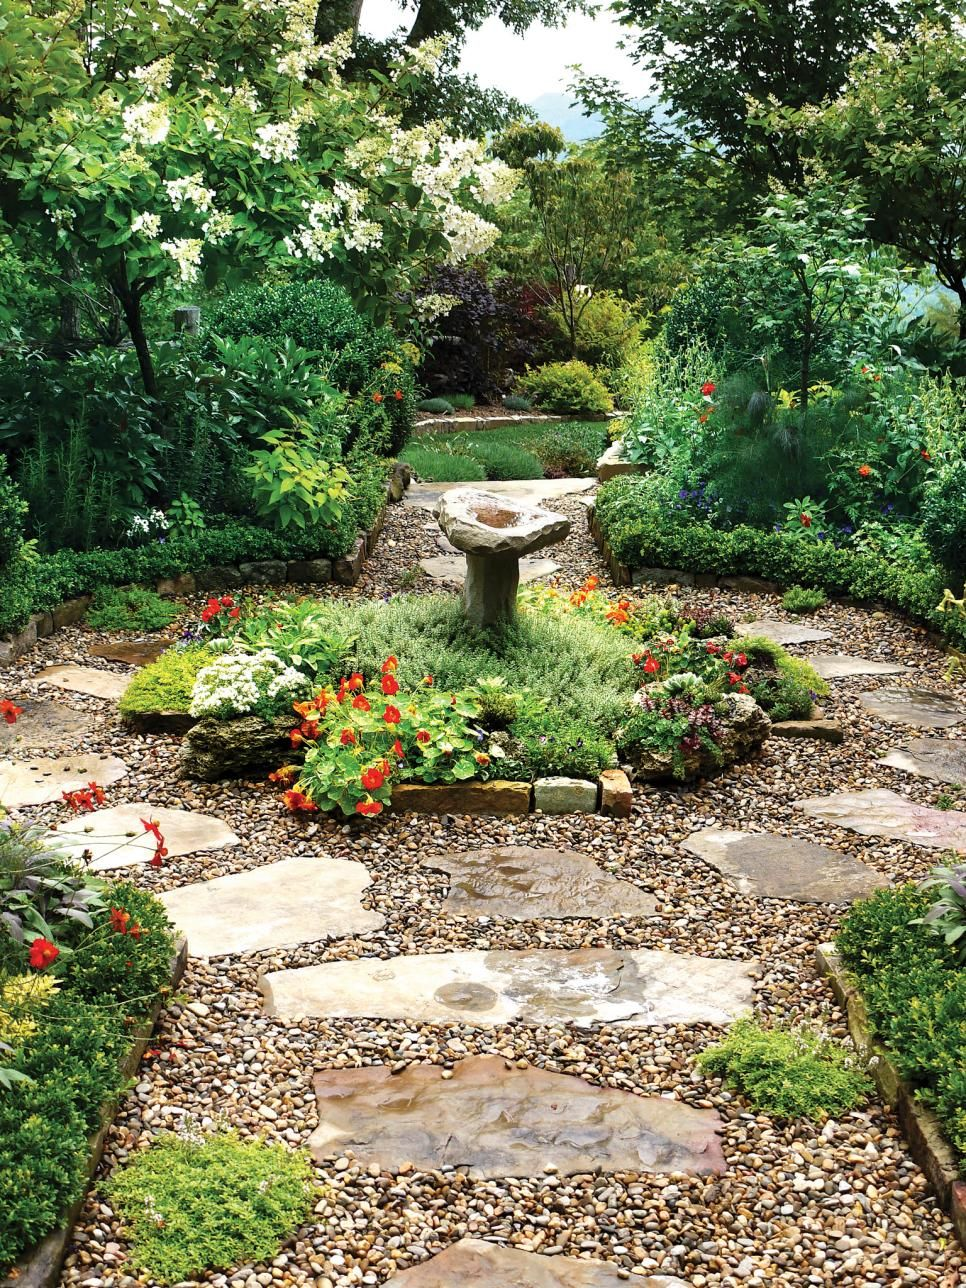 large flagstone pavers surrounded by pea gravel create a rustic